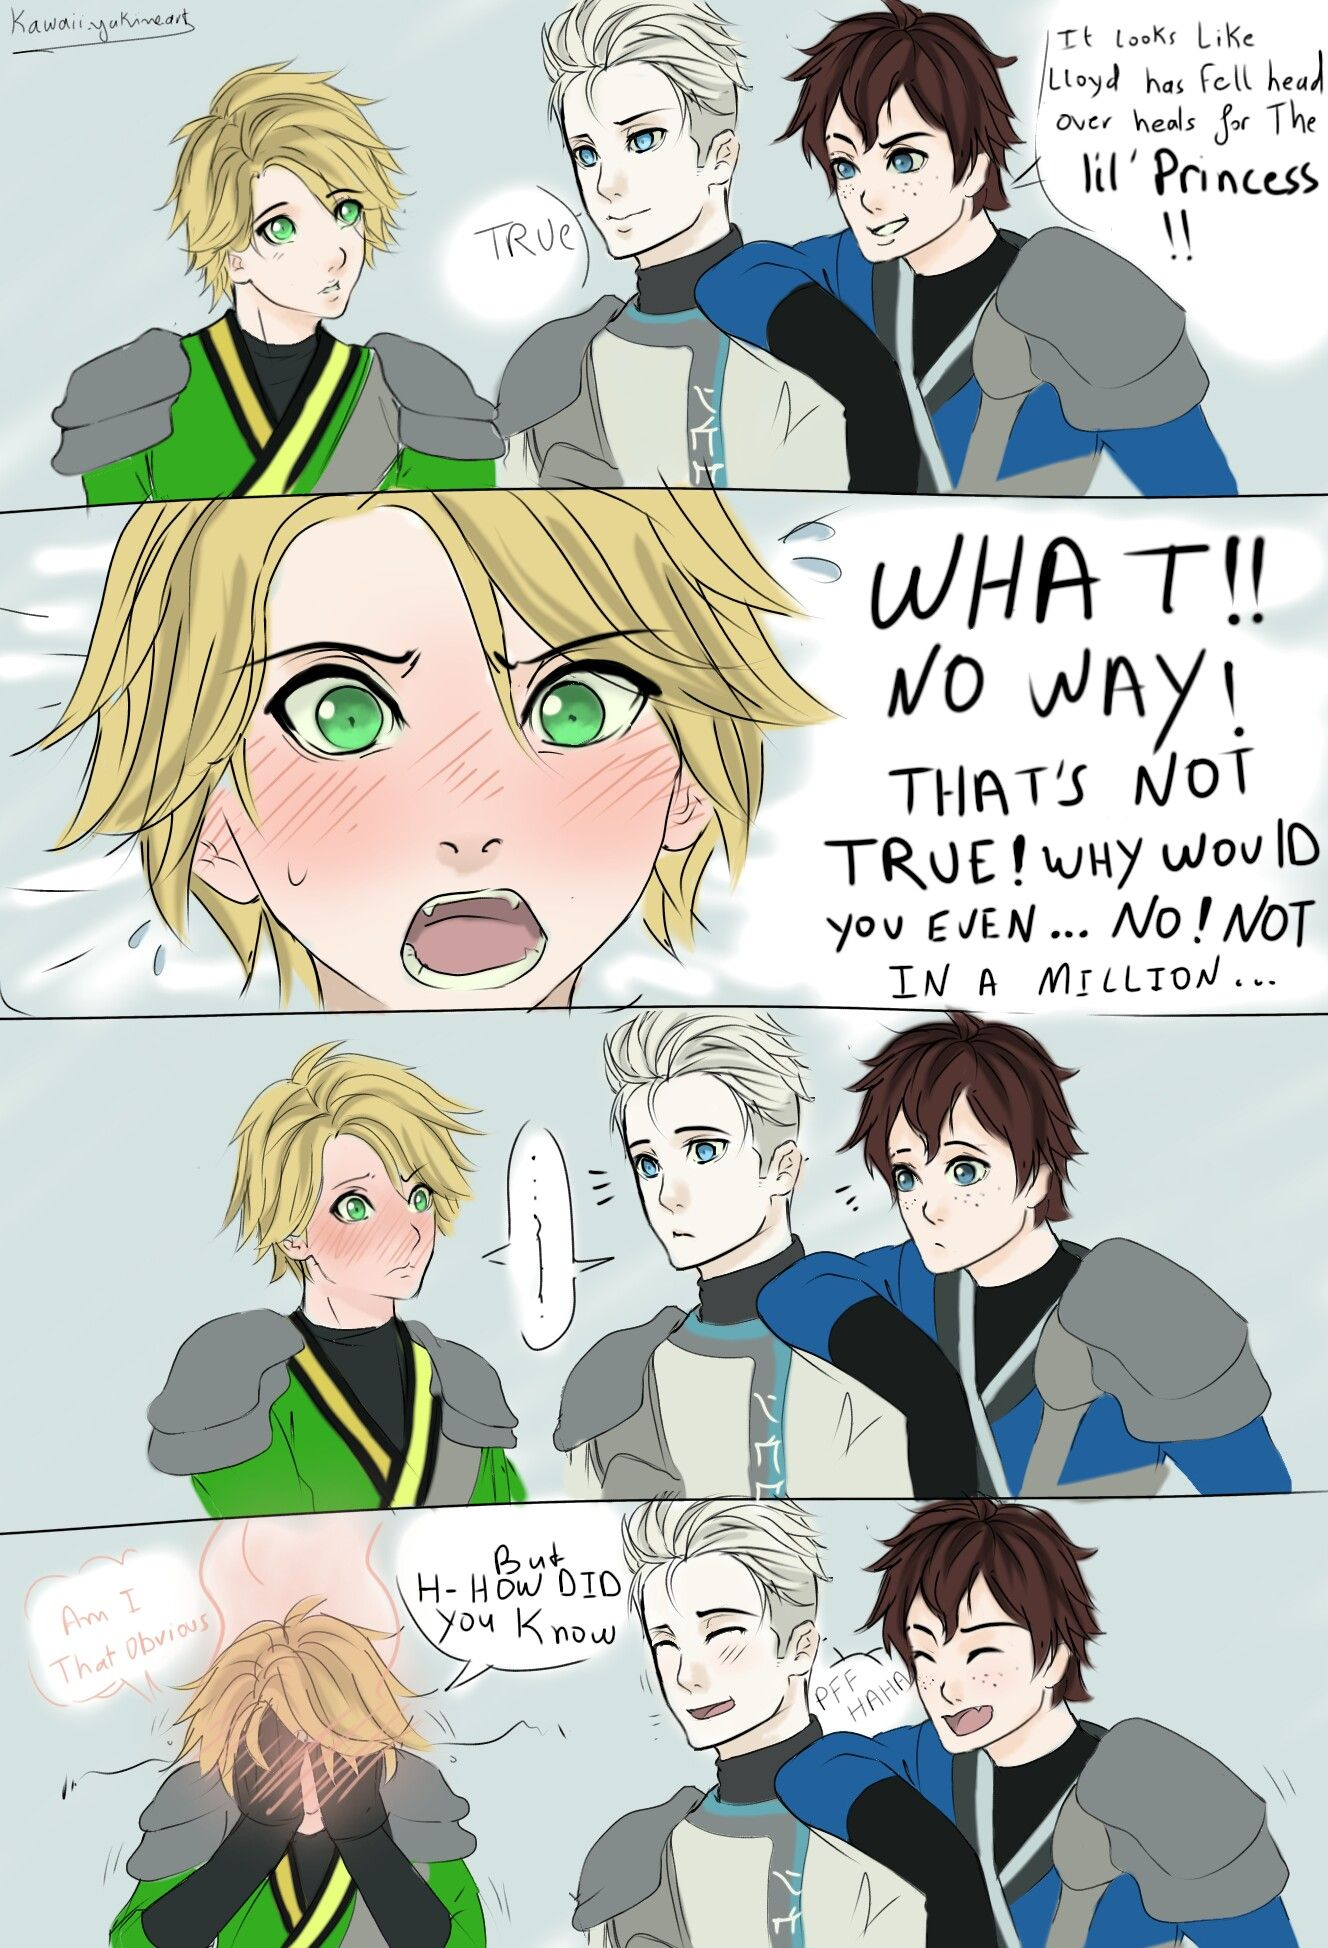 Awe Poor Lloyd My Iron Will Shall Both Support And Propel This